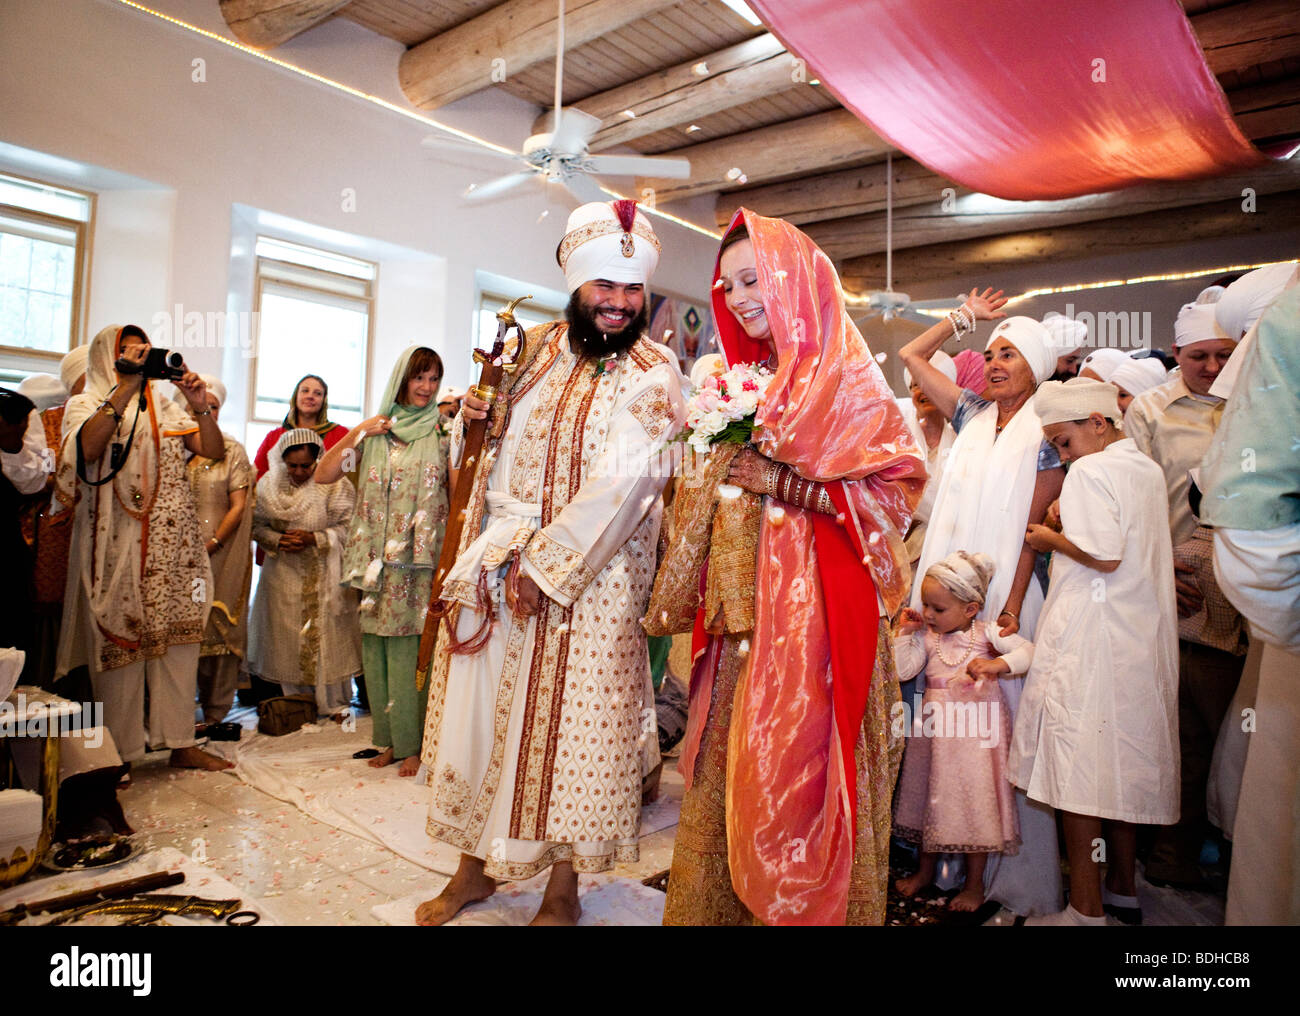 A Traditional Sikh Wedding Ceremony